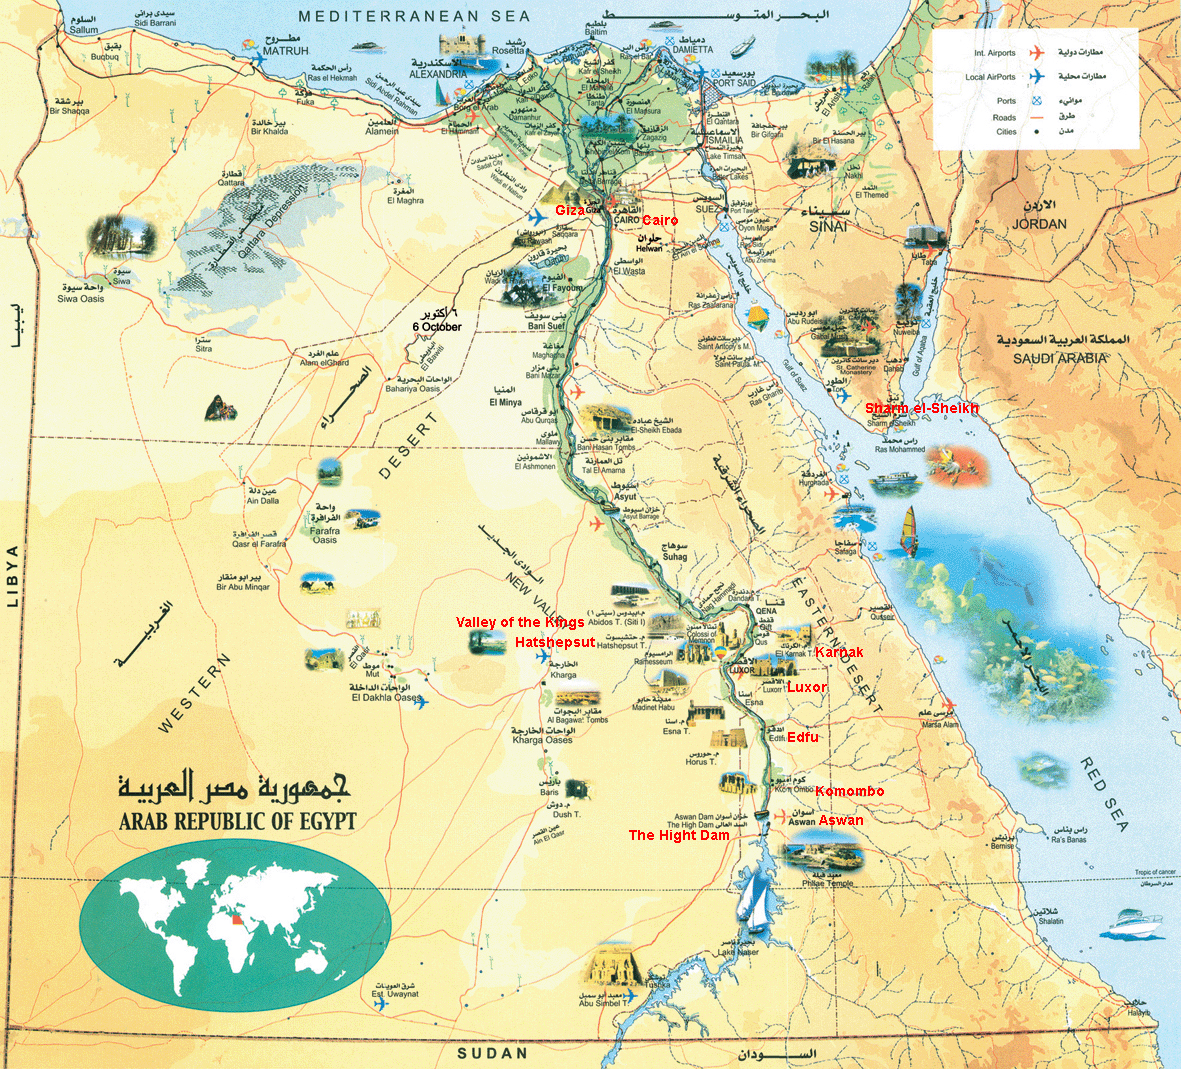 sharmel sheikh  c e r e n b o g a c - sharmel sheikh map of my journey